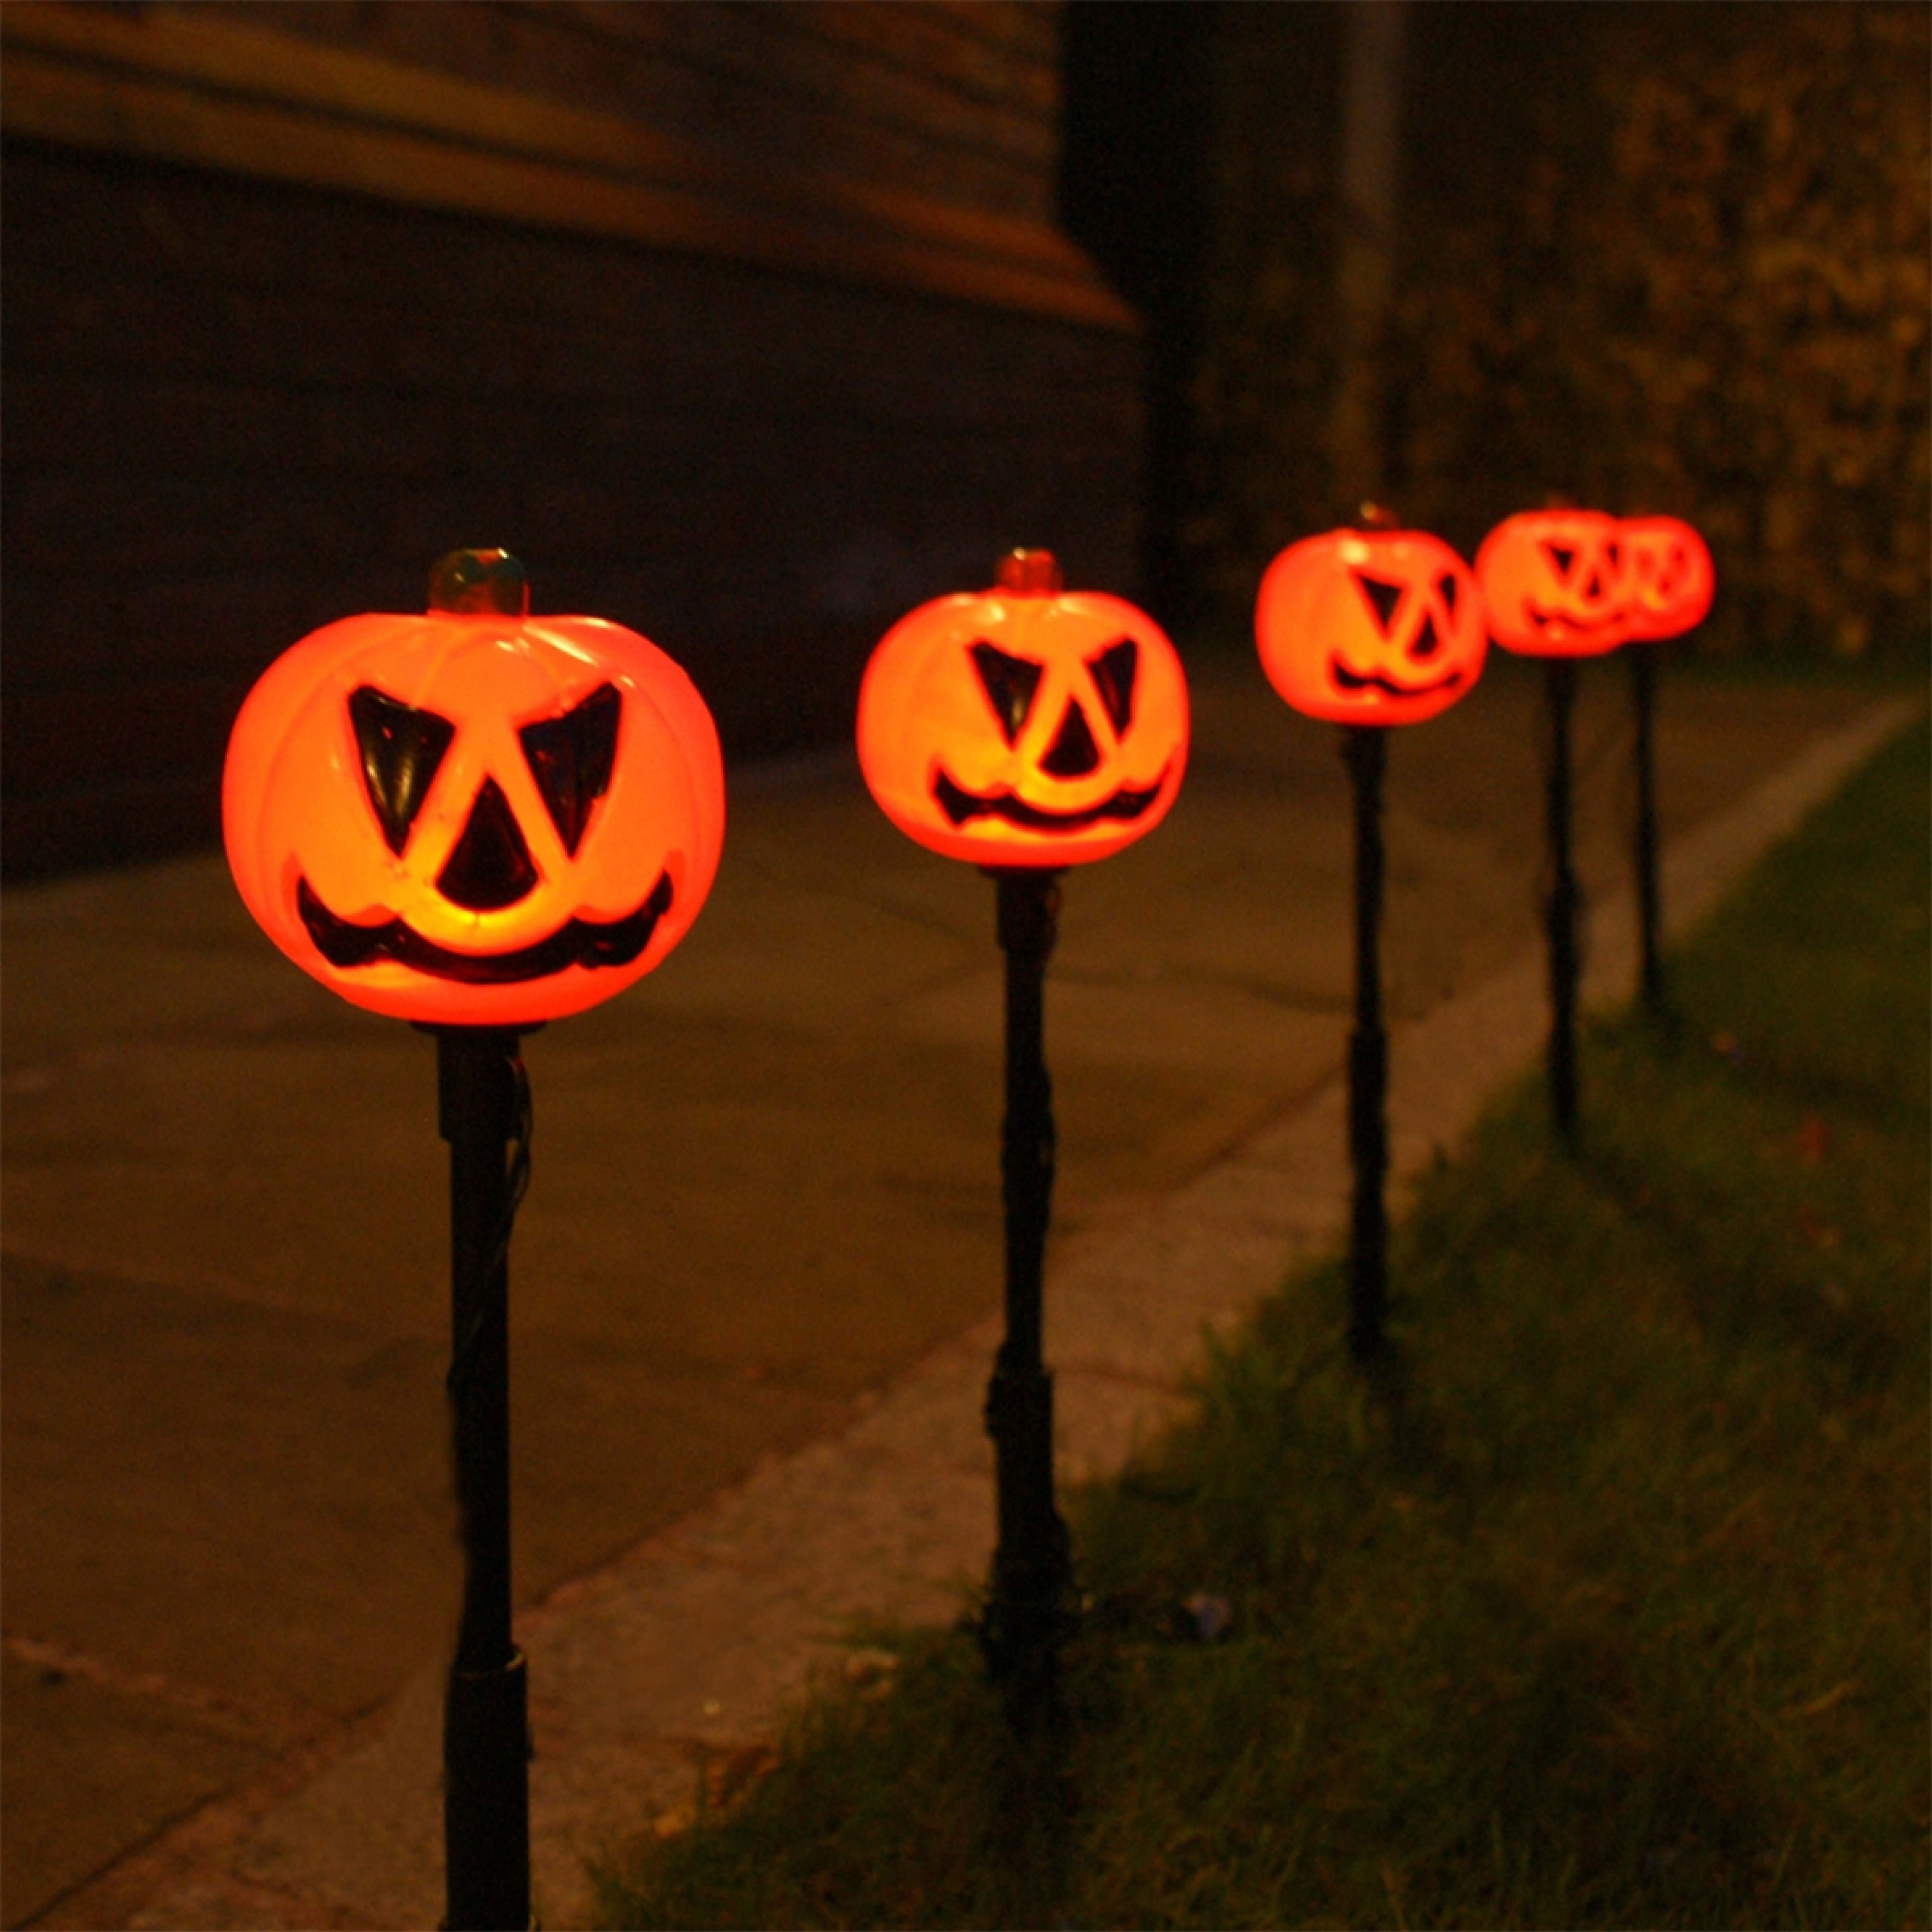 5 Outdoor Halloween Pumpkin Stake Lights, Orange Leds With Regard To Popular Outdoor Pumpkin Lanterns (View 4 of 20)